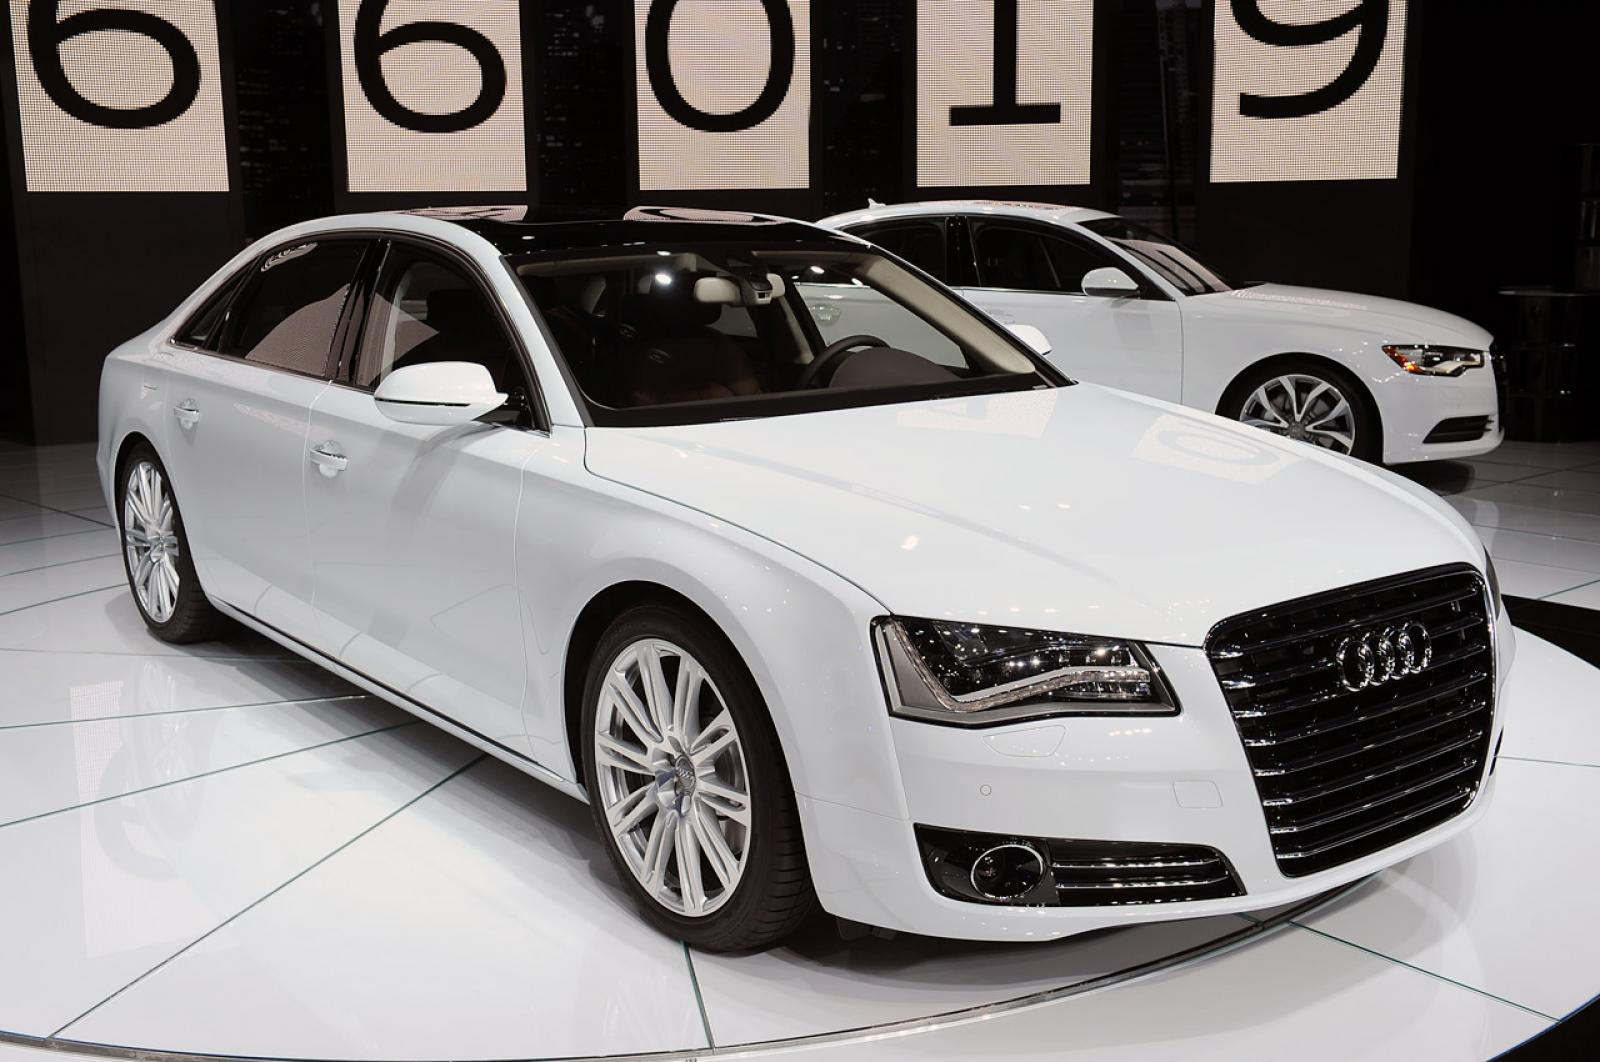 2014 audi a8 information and photos zombiedrive 800 1024 1280 1600 origin 2014 audi a8 publicscrutiny Gallery